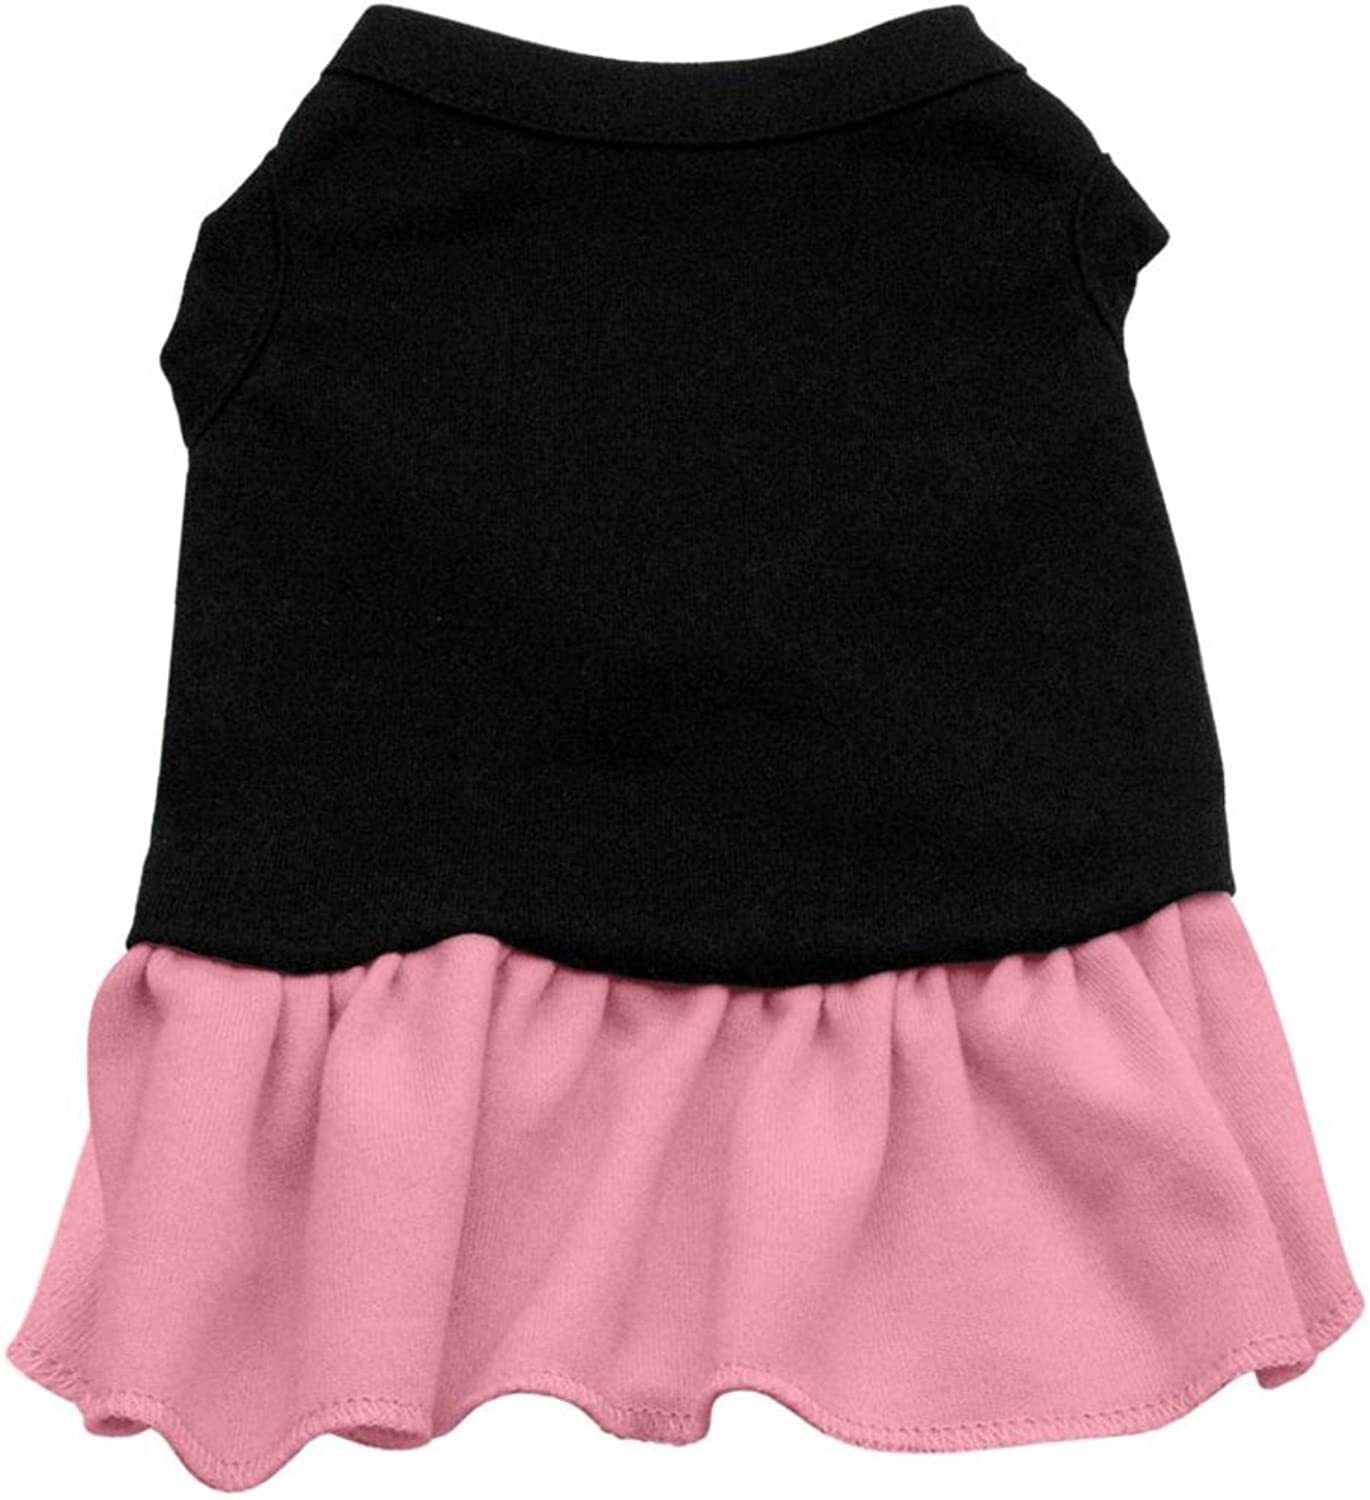 Mirage Pet Products 10Inch Plain Dress, Small, Black with Pink